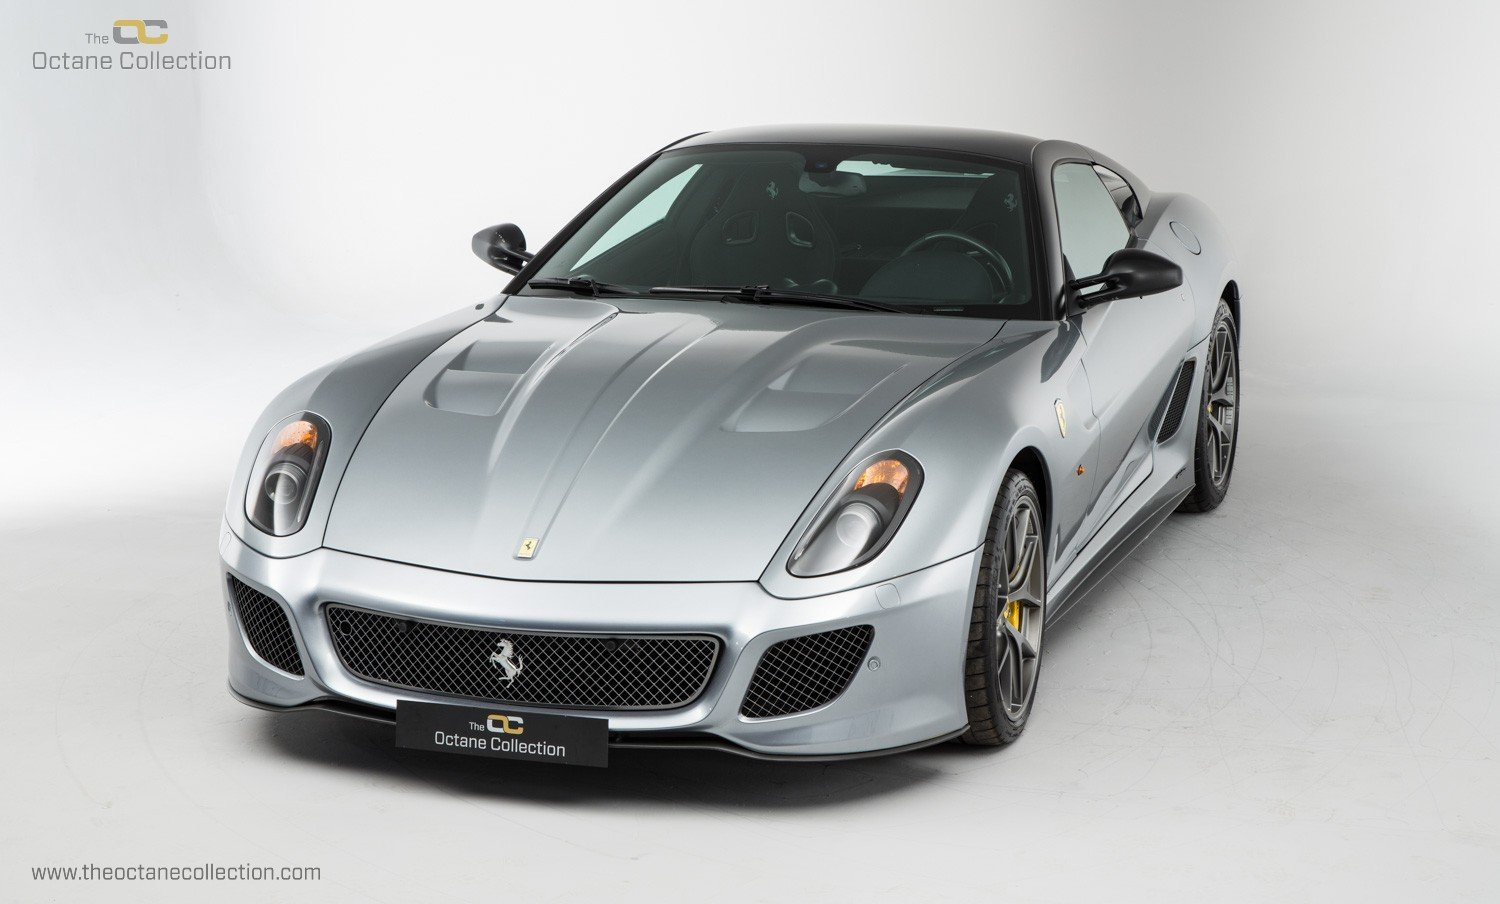 2011 FERRARI 599 GTO  For Sale (picture 3 of 22)